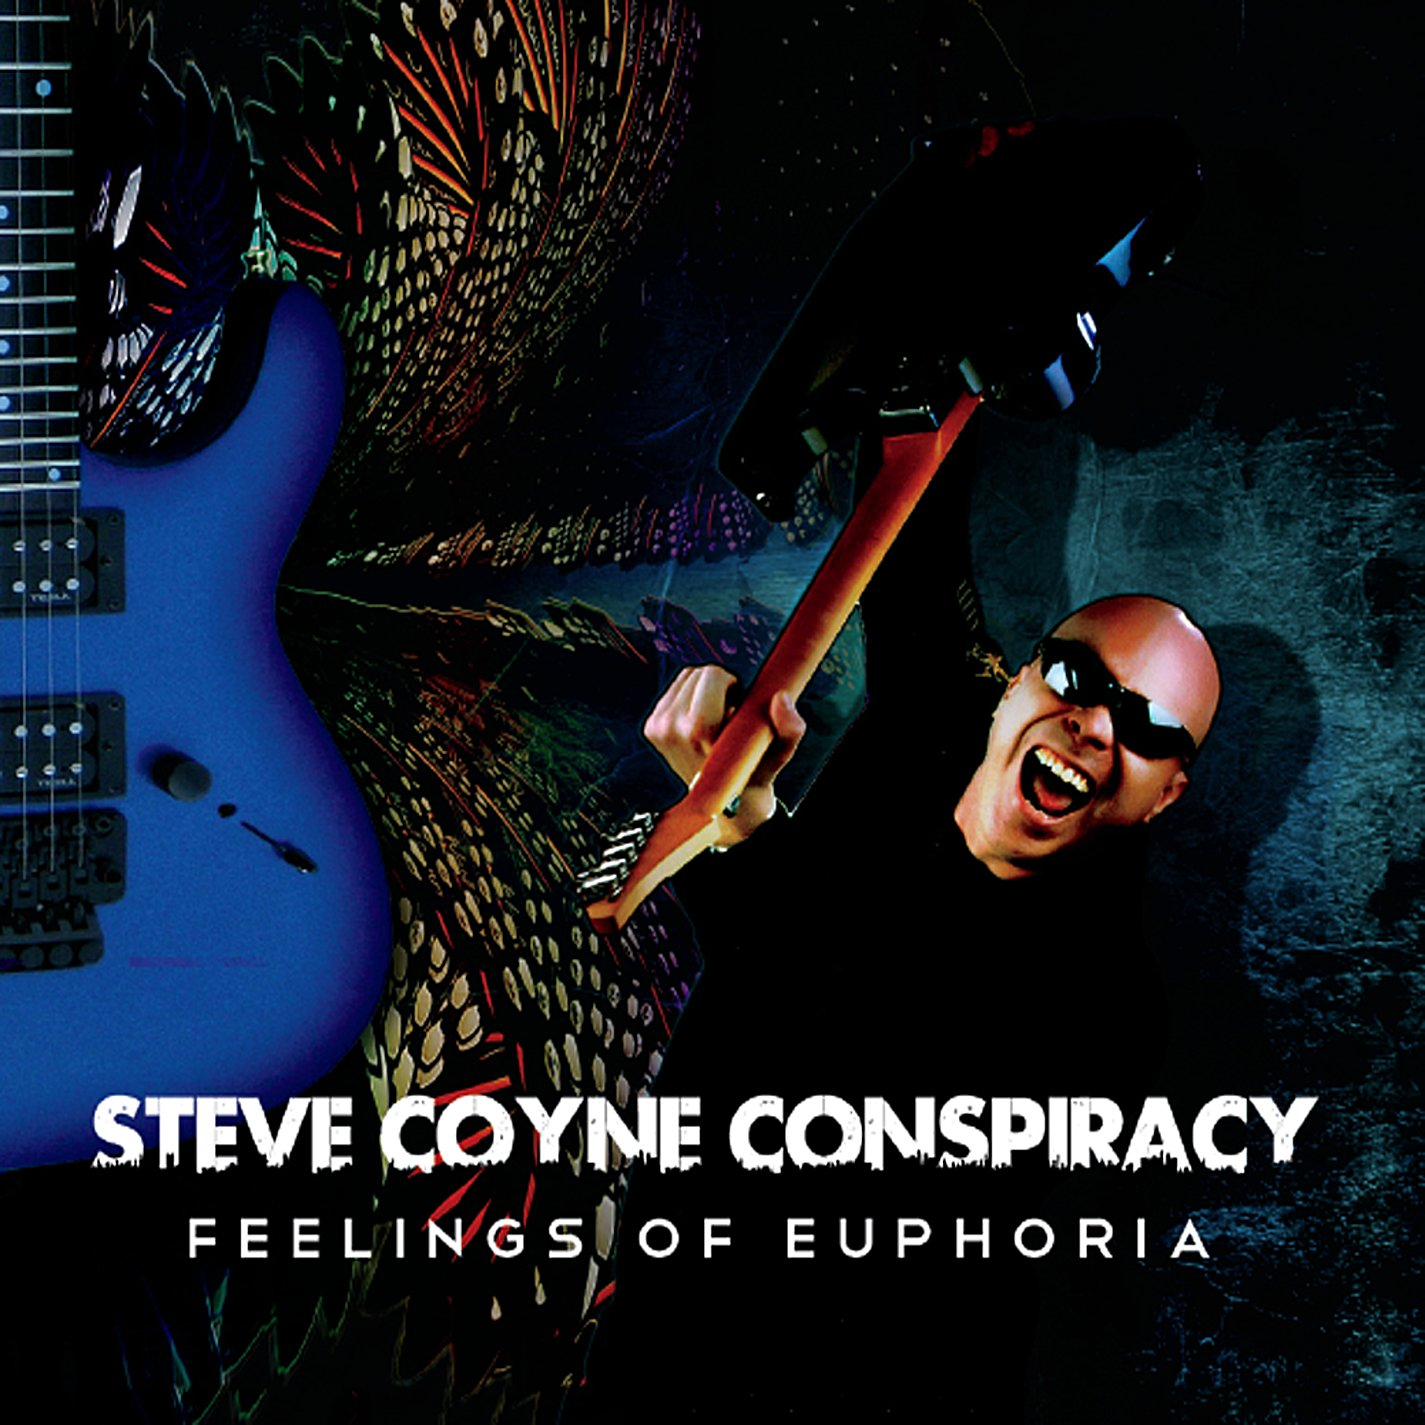 STEVE COYNE CONSPIRACY Feelings Of Euphoria